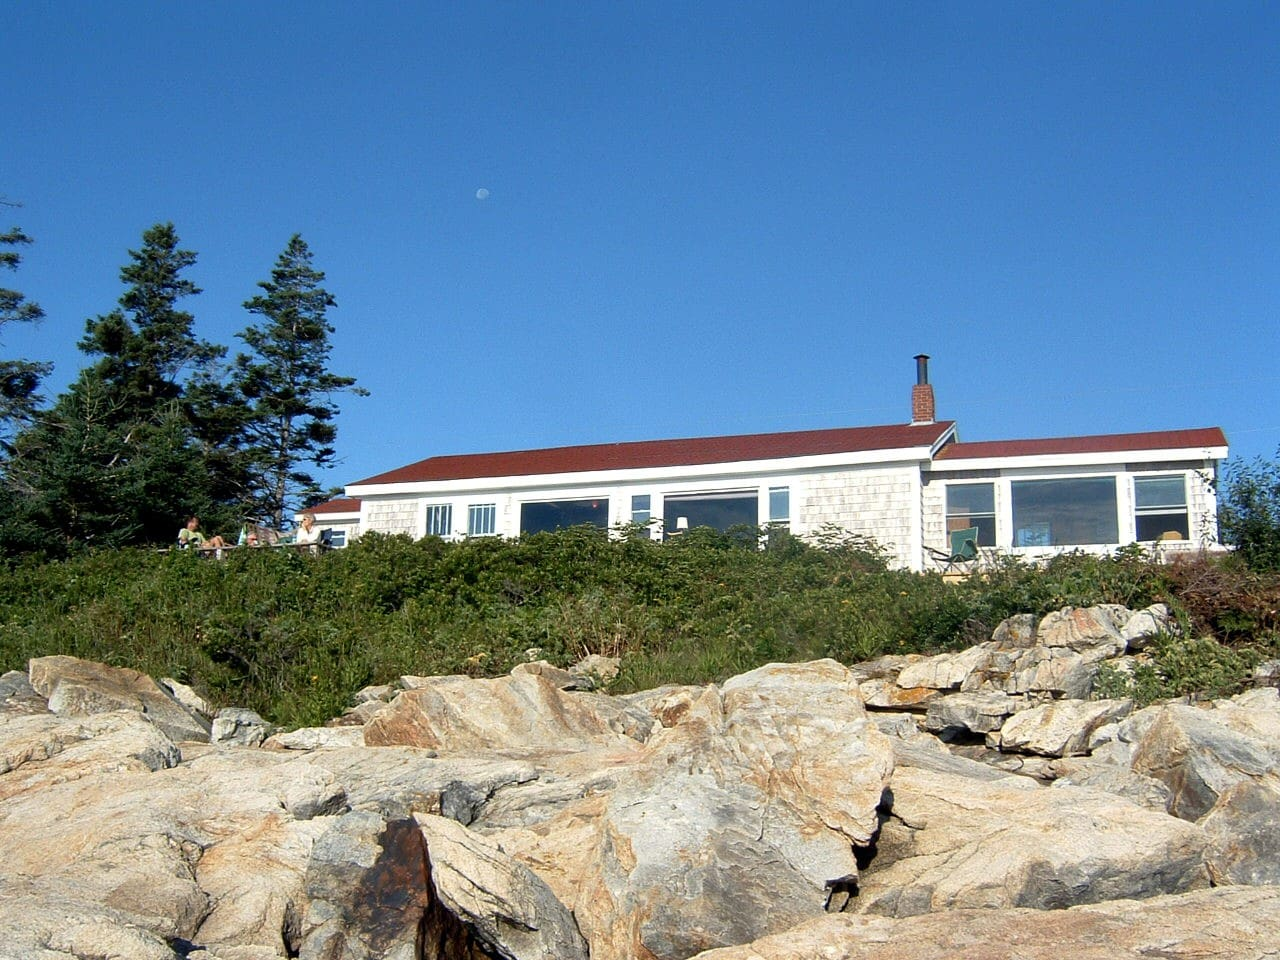 If you stand at ocean's edge, here's the cottage, master BR at right of image, deck on the left.